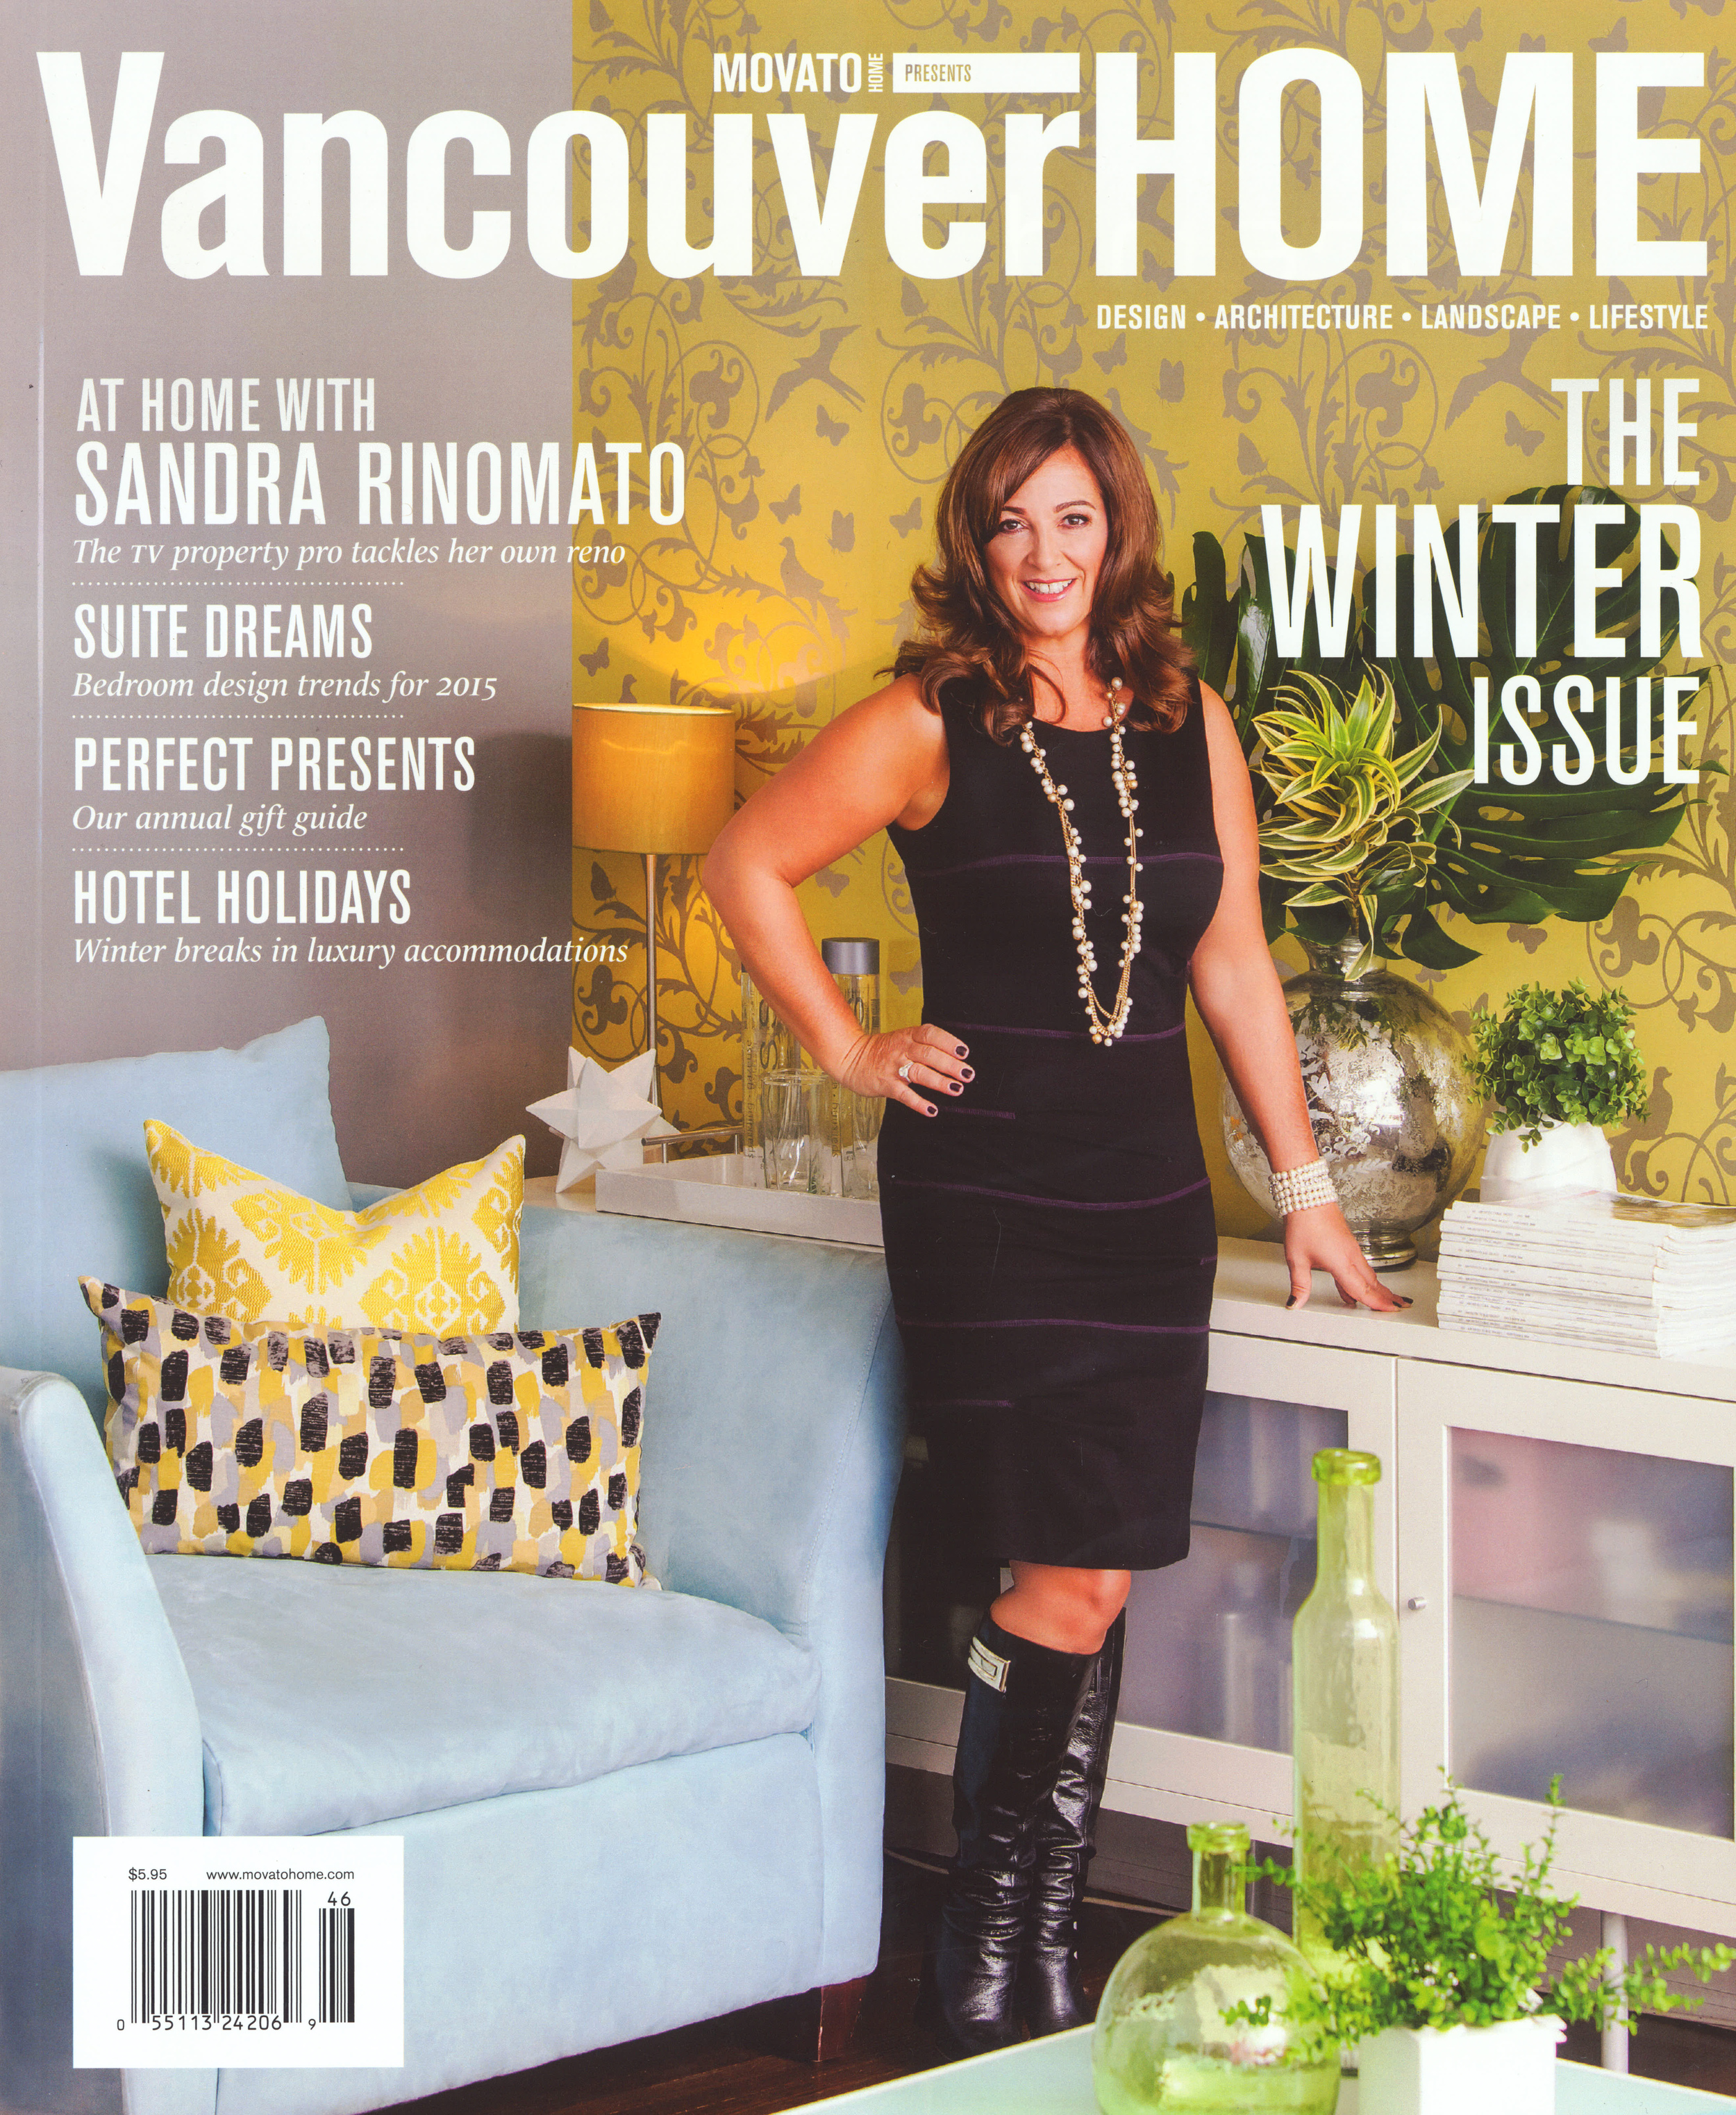 Vancouver Home cover.jpg